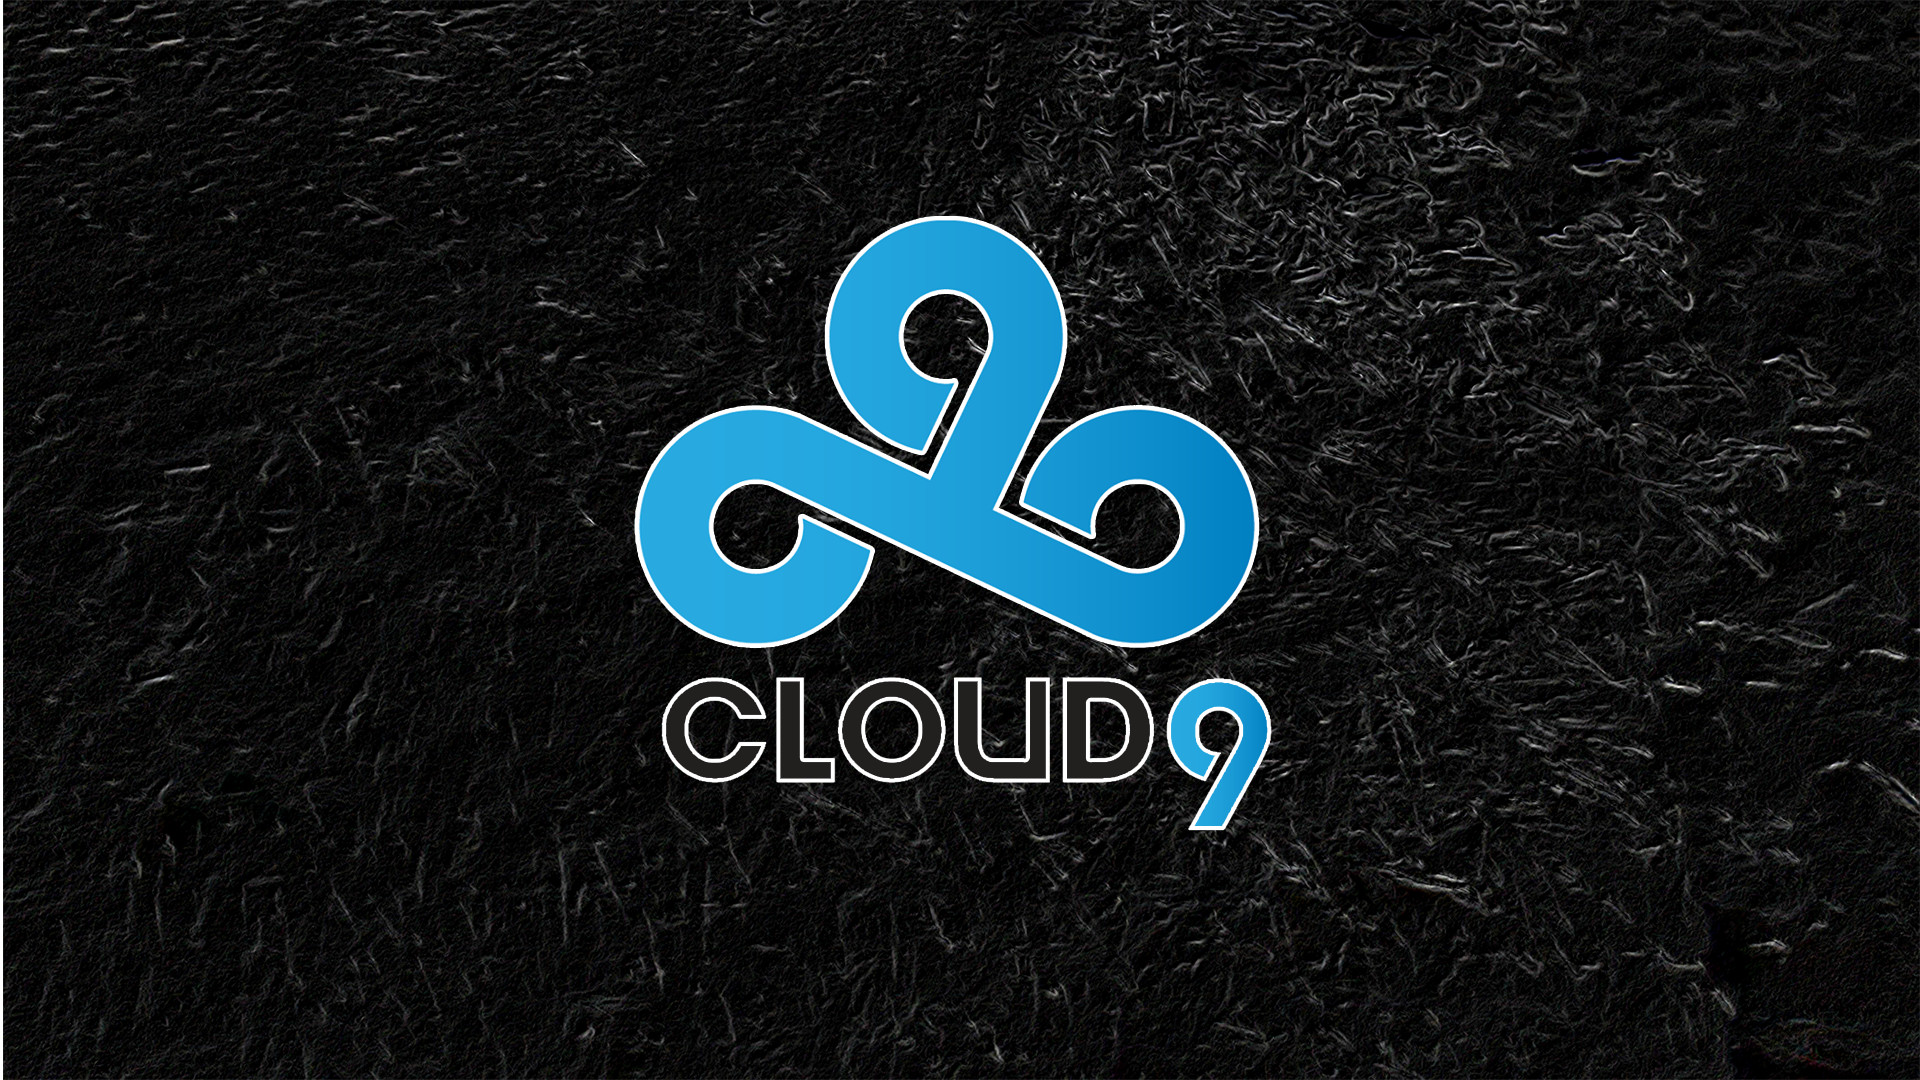 … Cloud9 CS:GO and LoL Wallpaper HD by toskevdesing